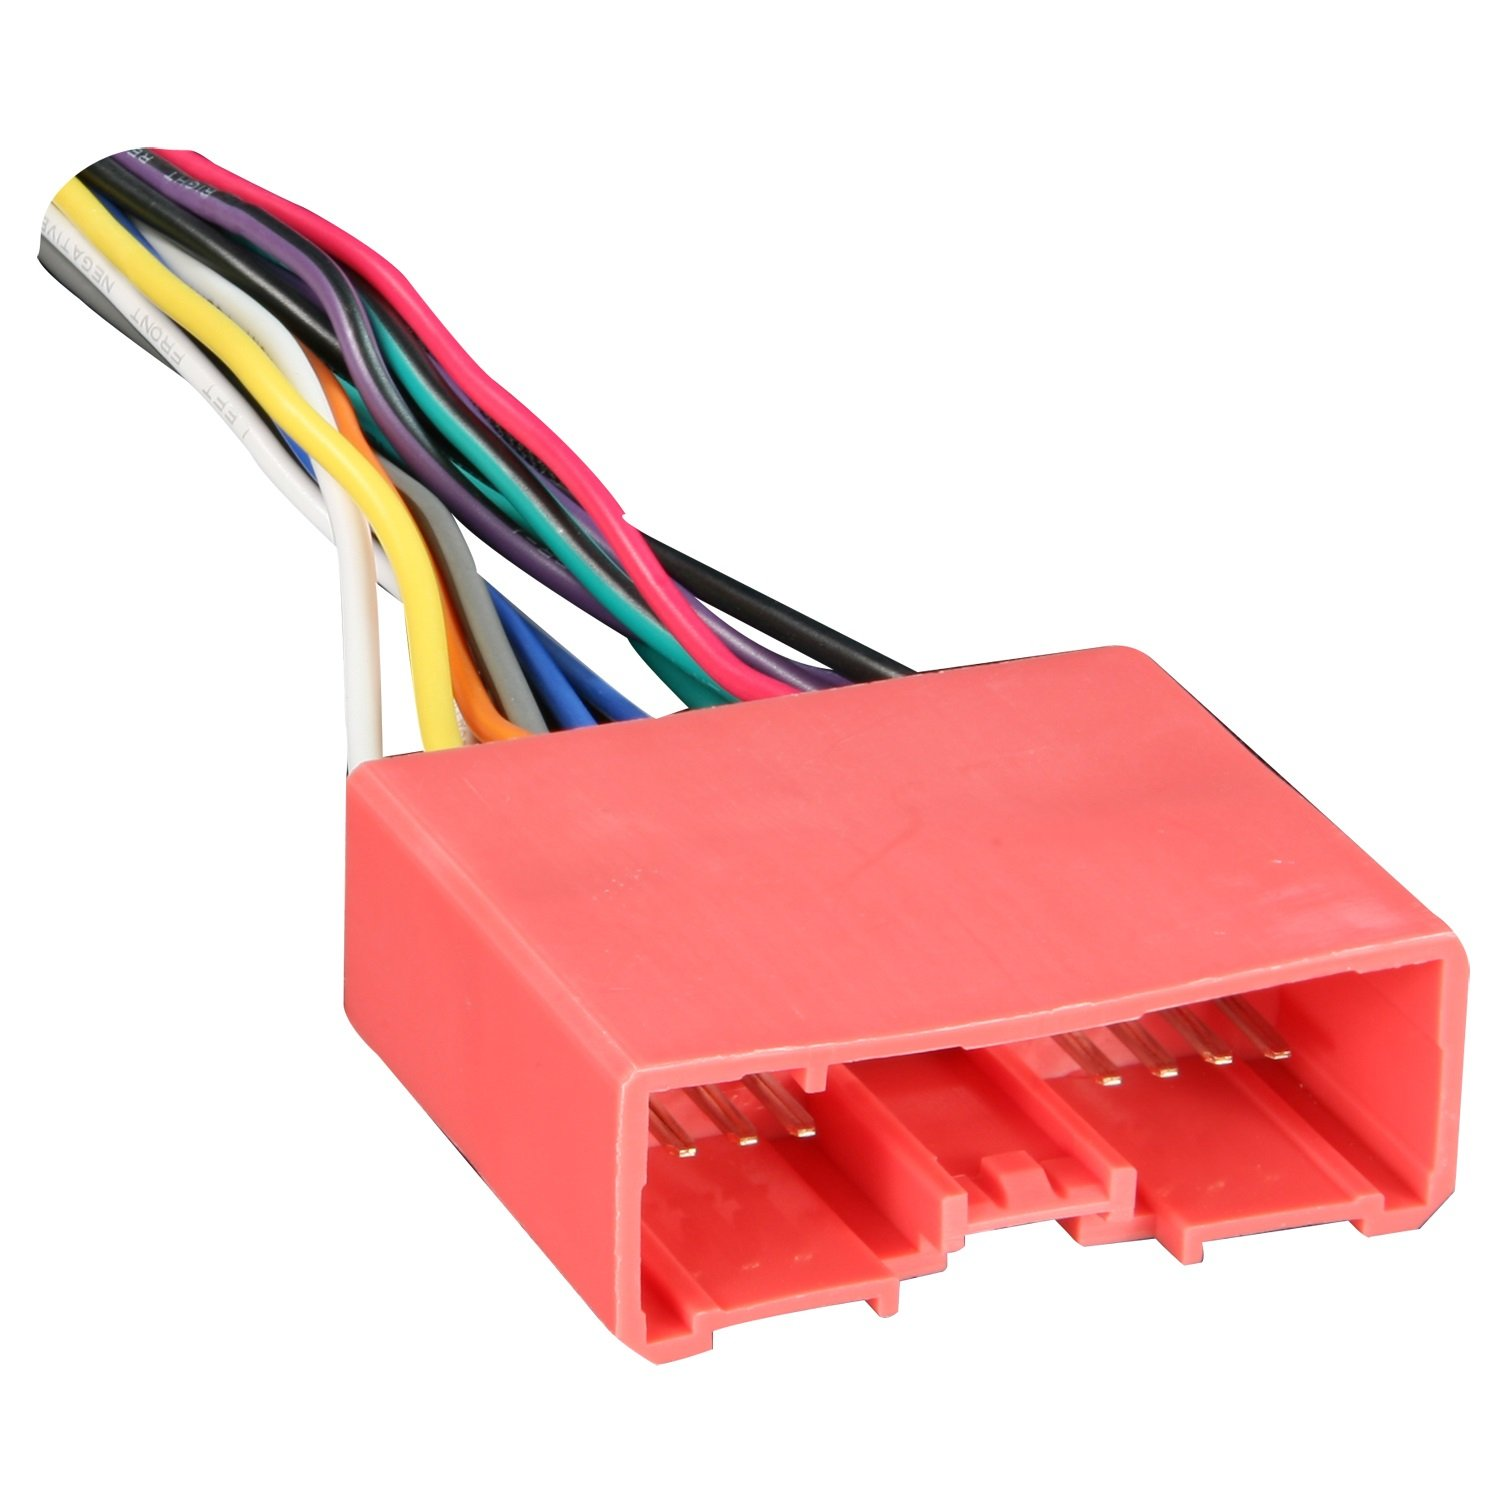 61xRWoZ7Z8L._SL1500_ amazon com metra electronics 70 7903 wiring harness for 2001 up Mazda Protege Heater Control at gsmx.co